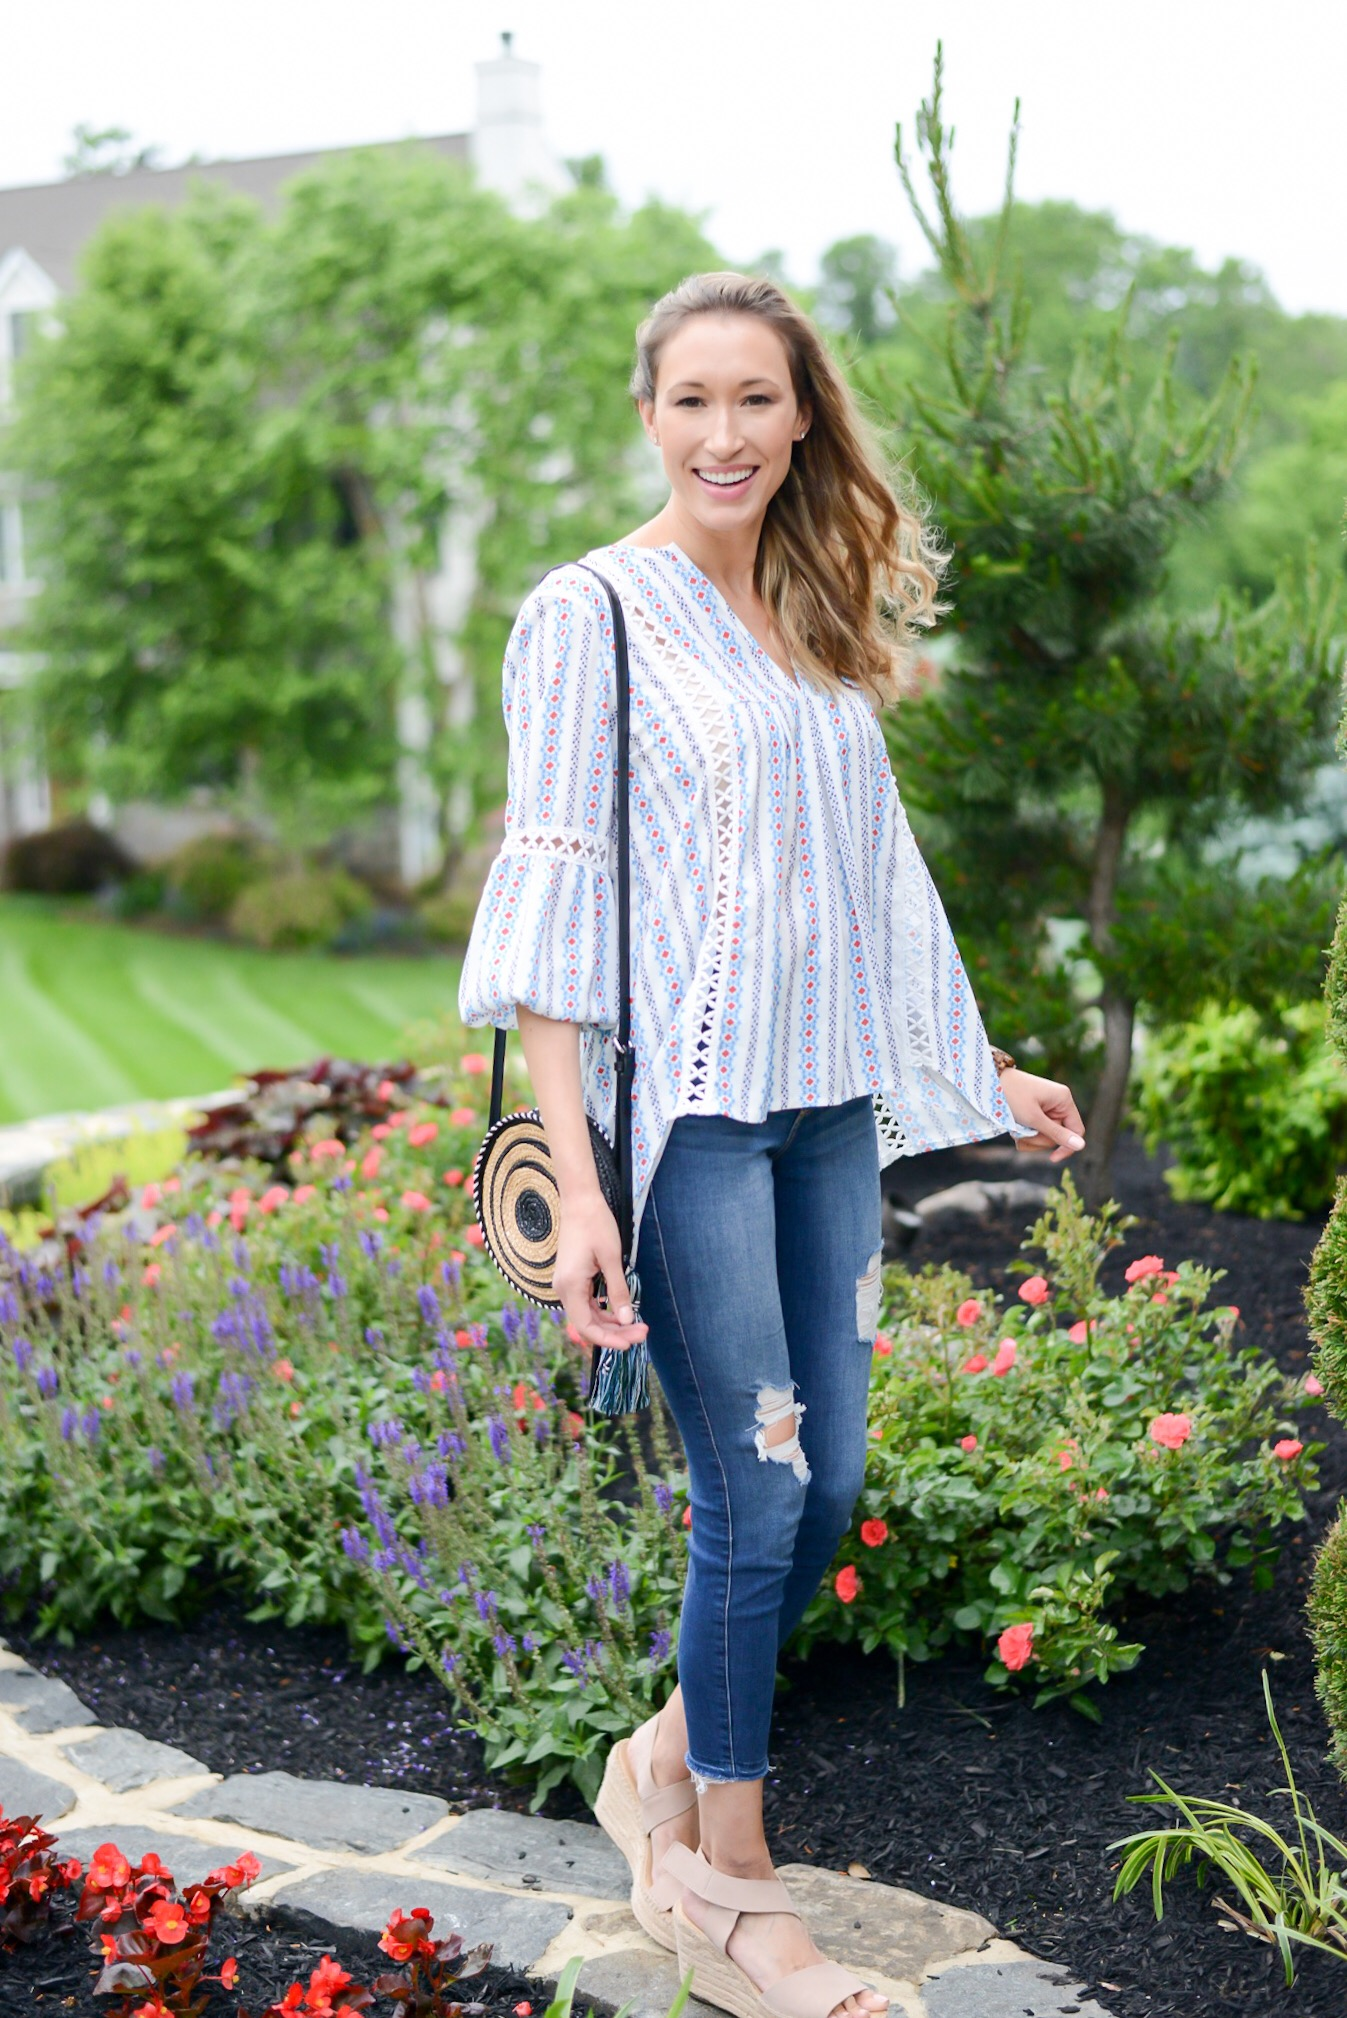 Summer Fashion Amazon Finds Under $21 (See My Outfits!)- boho top, circle bag, wedges, distressed jeans